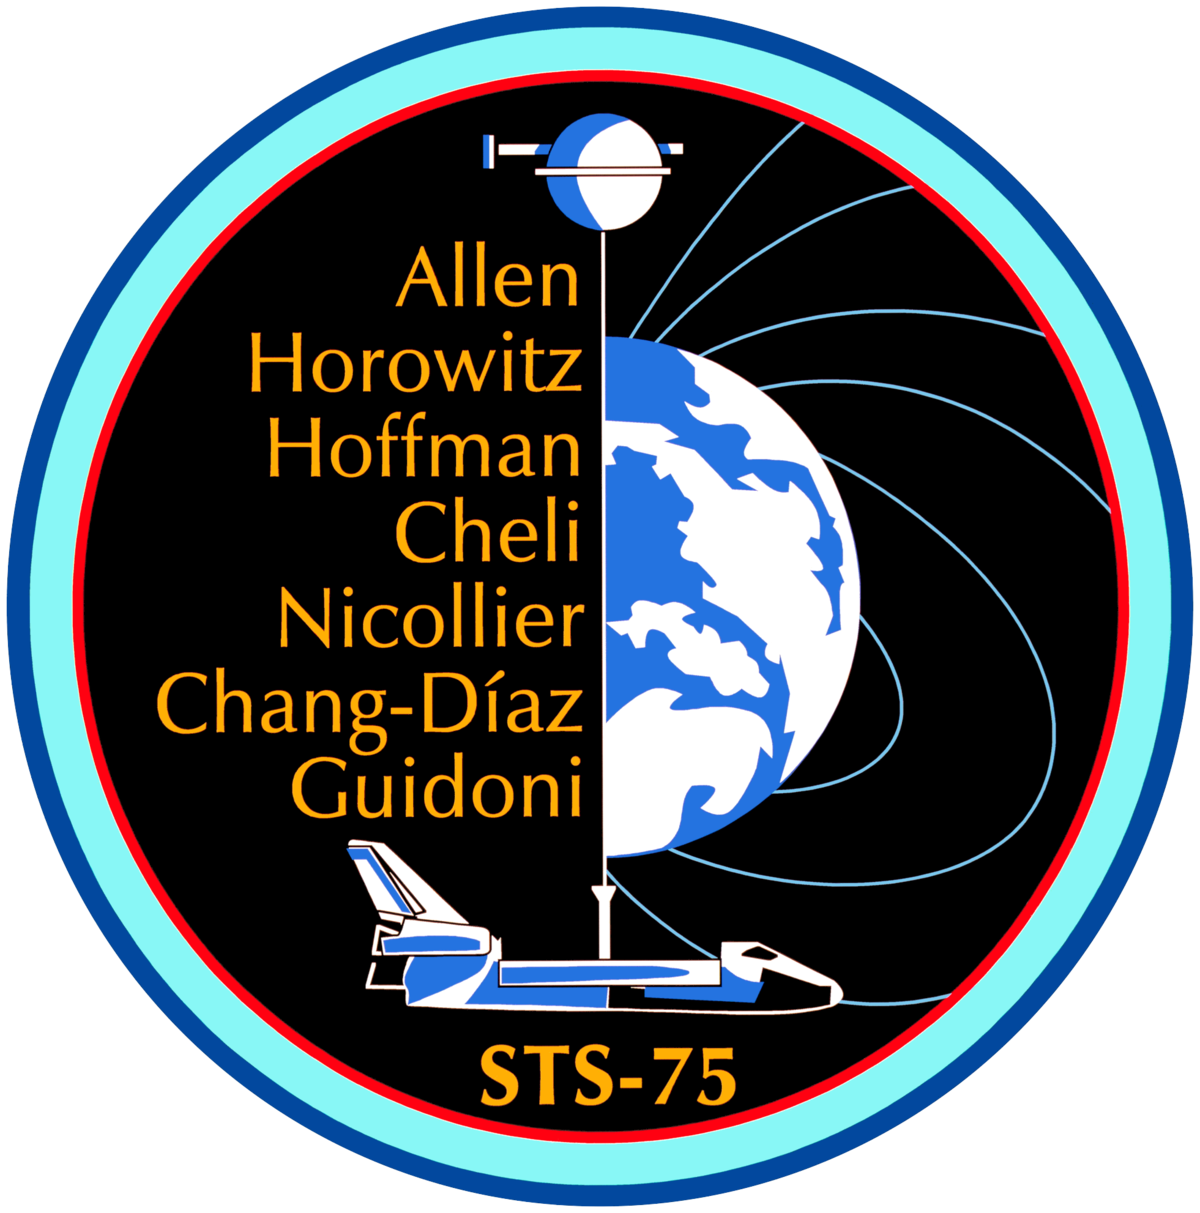 Mission Patches On Mission 4 To The International Space: Wikipedia